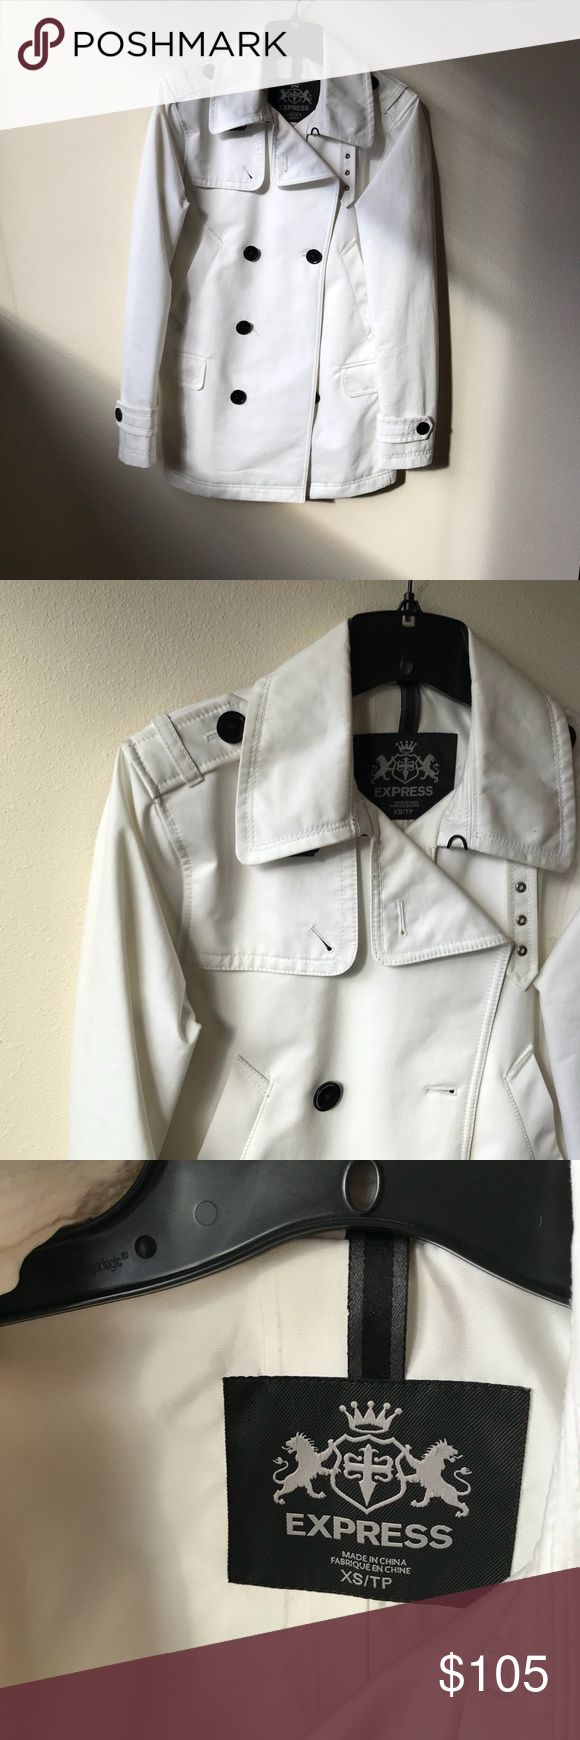 White mens trendy trench coat Express white mens trendy trench coat! This is a beautiful piece from express very trendy and perfect for colder weather, looks perfect paired with a scarf. It's only small flaw is wearing stain around the neck which can be easily removed at the dry cleaner and it'll be like new. Other than that there is no visible or unremovable stains anywhere else. The sleeves are also in perfect condition. Ask any questions you may have. The size is xs Express Jackets…